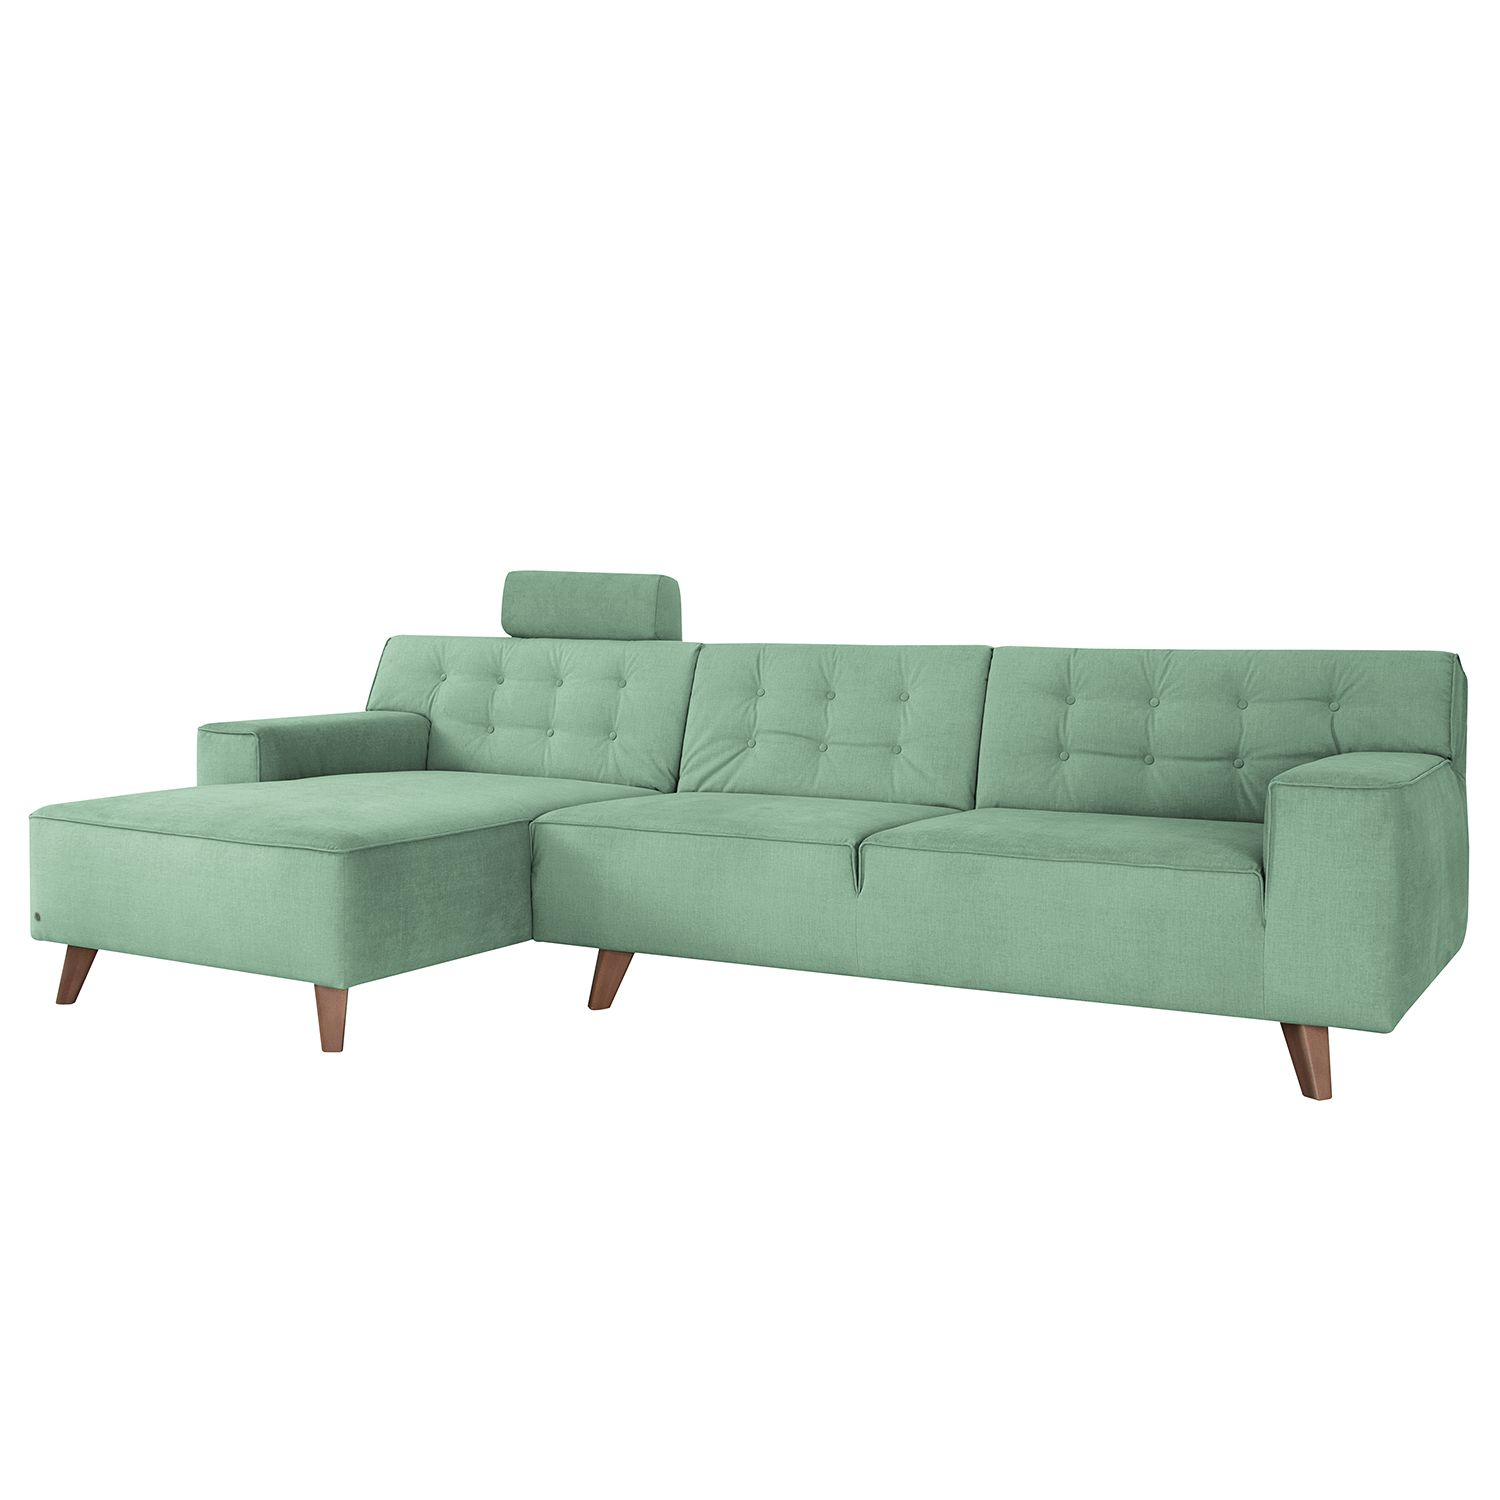 Full Size of Sofa Tom Tailor Heaven Casual Nordic Chic West Coast Style Xl Otto Big Couch Pure Colors Cube S Elements Ecksofa Iii Webstoff Longchair Davorstehend Links Sofa Sofa Tom Tailor